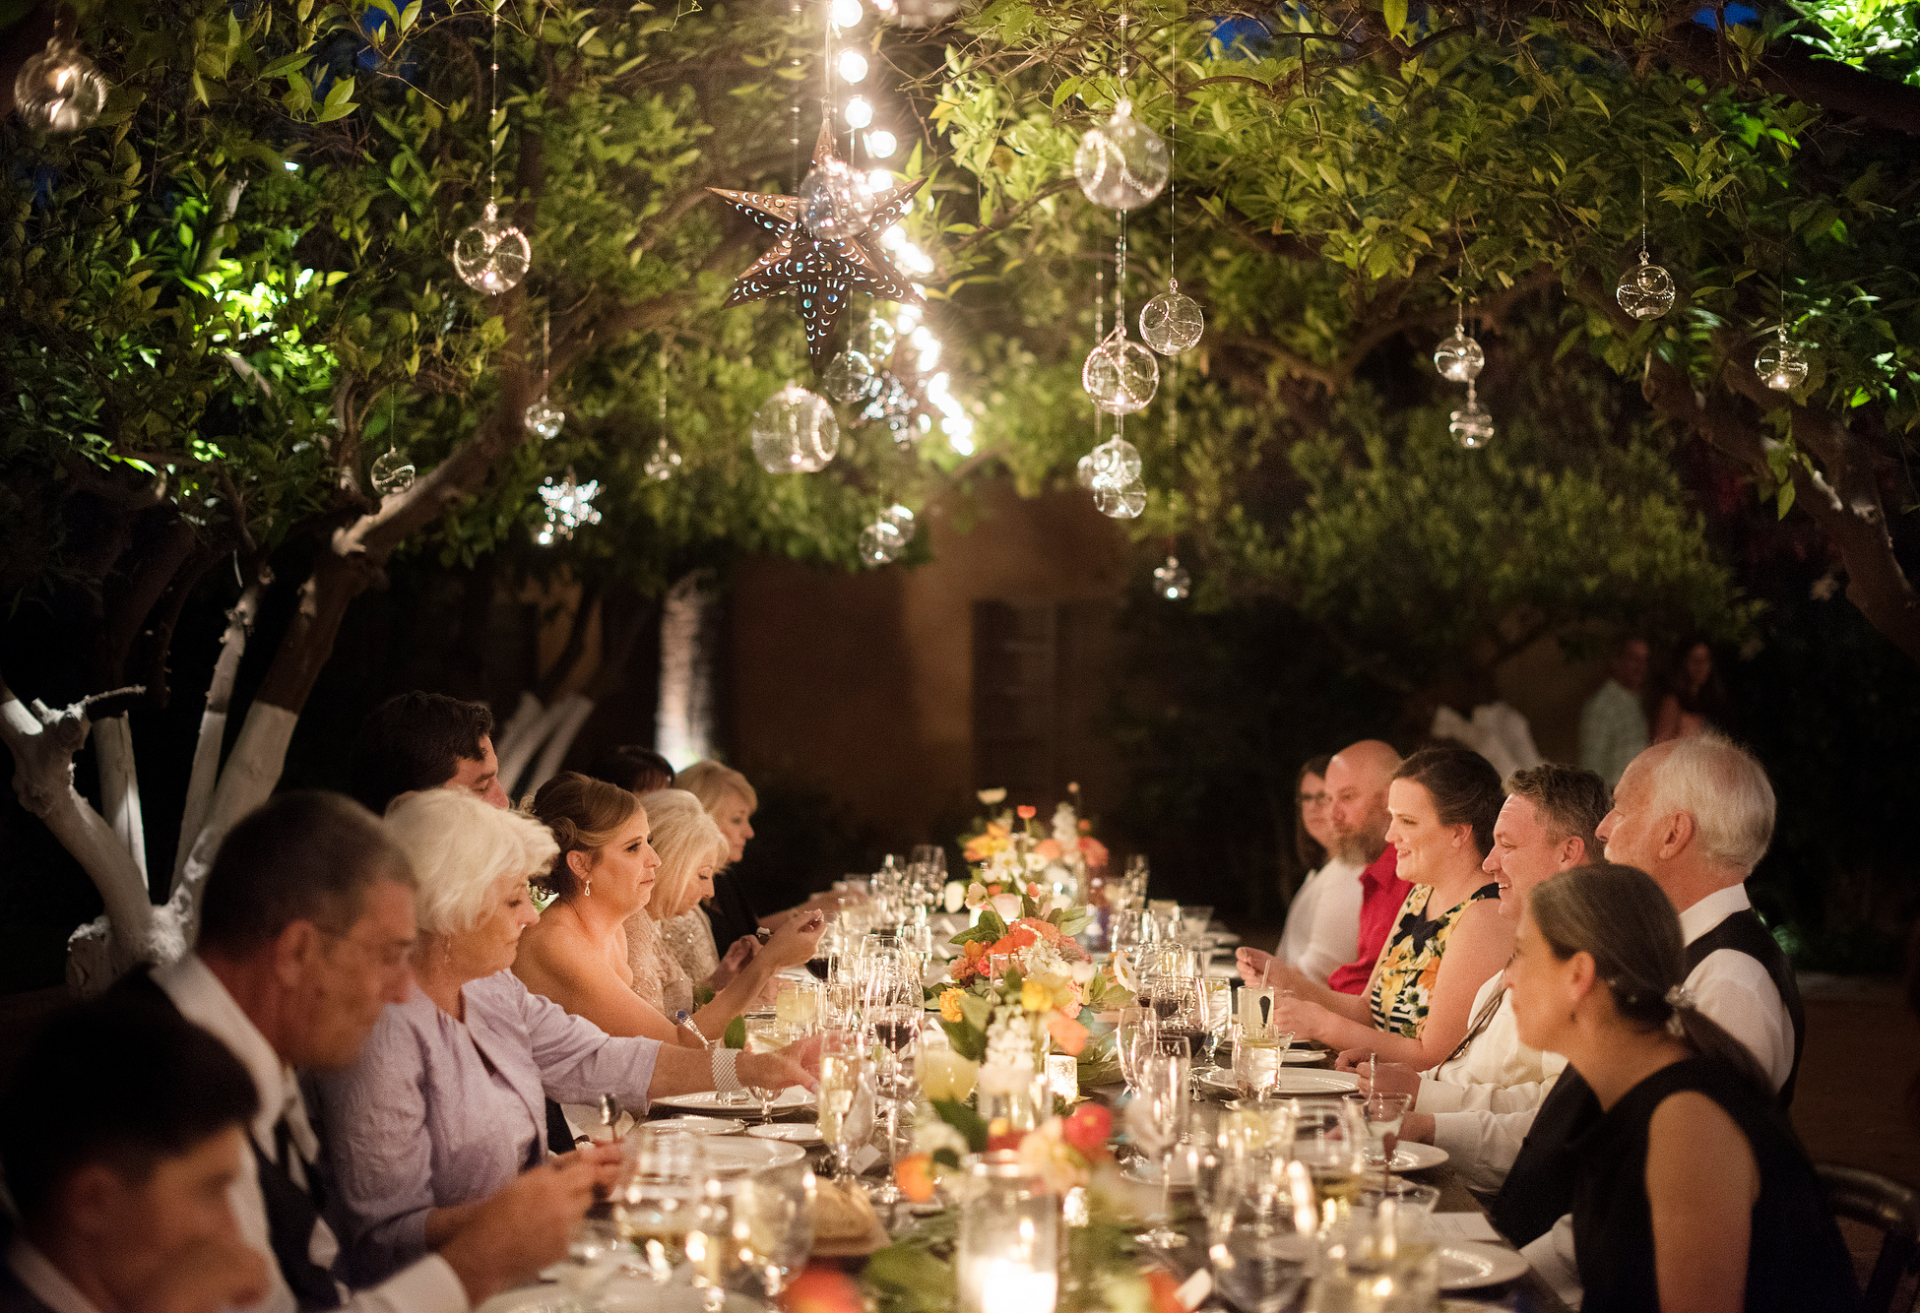 AZ Elopement Reception Venue Photo | The wedding reception dinner takes place outside